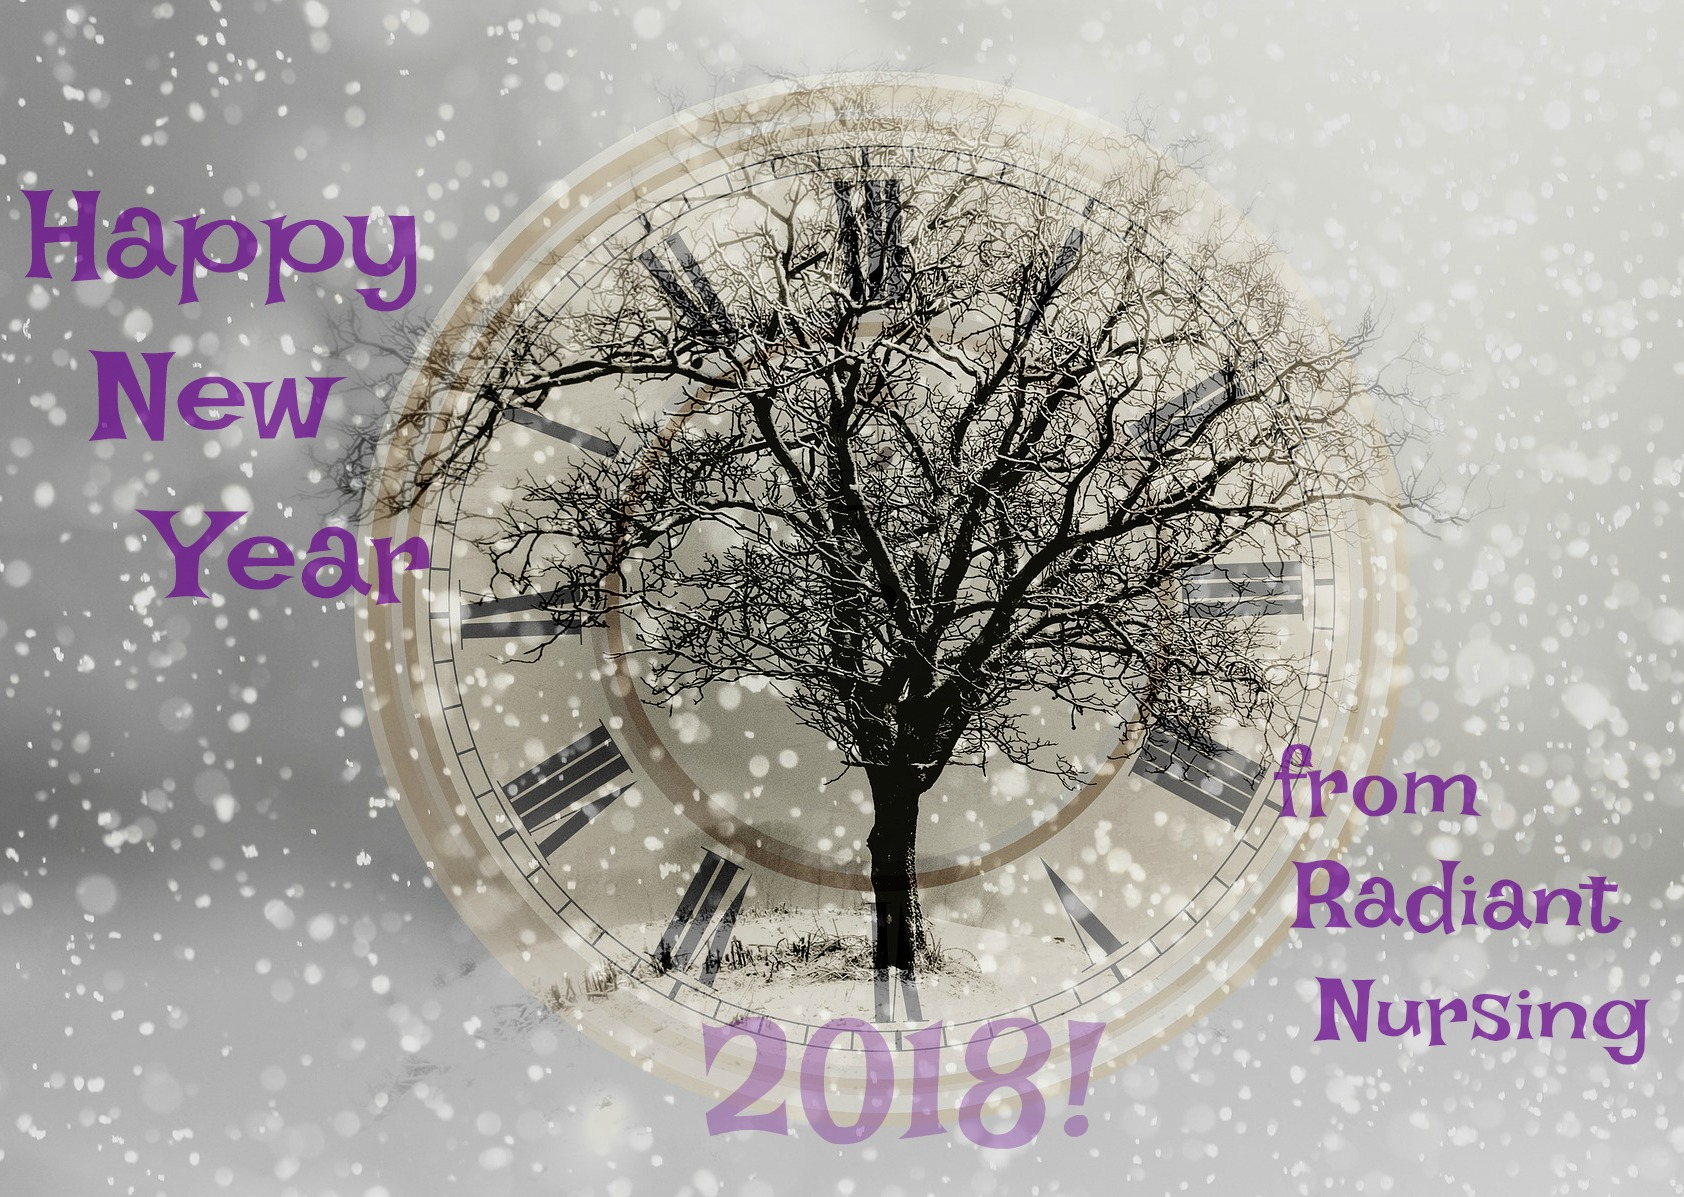 Happy New Year from Radiant Nursing!